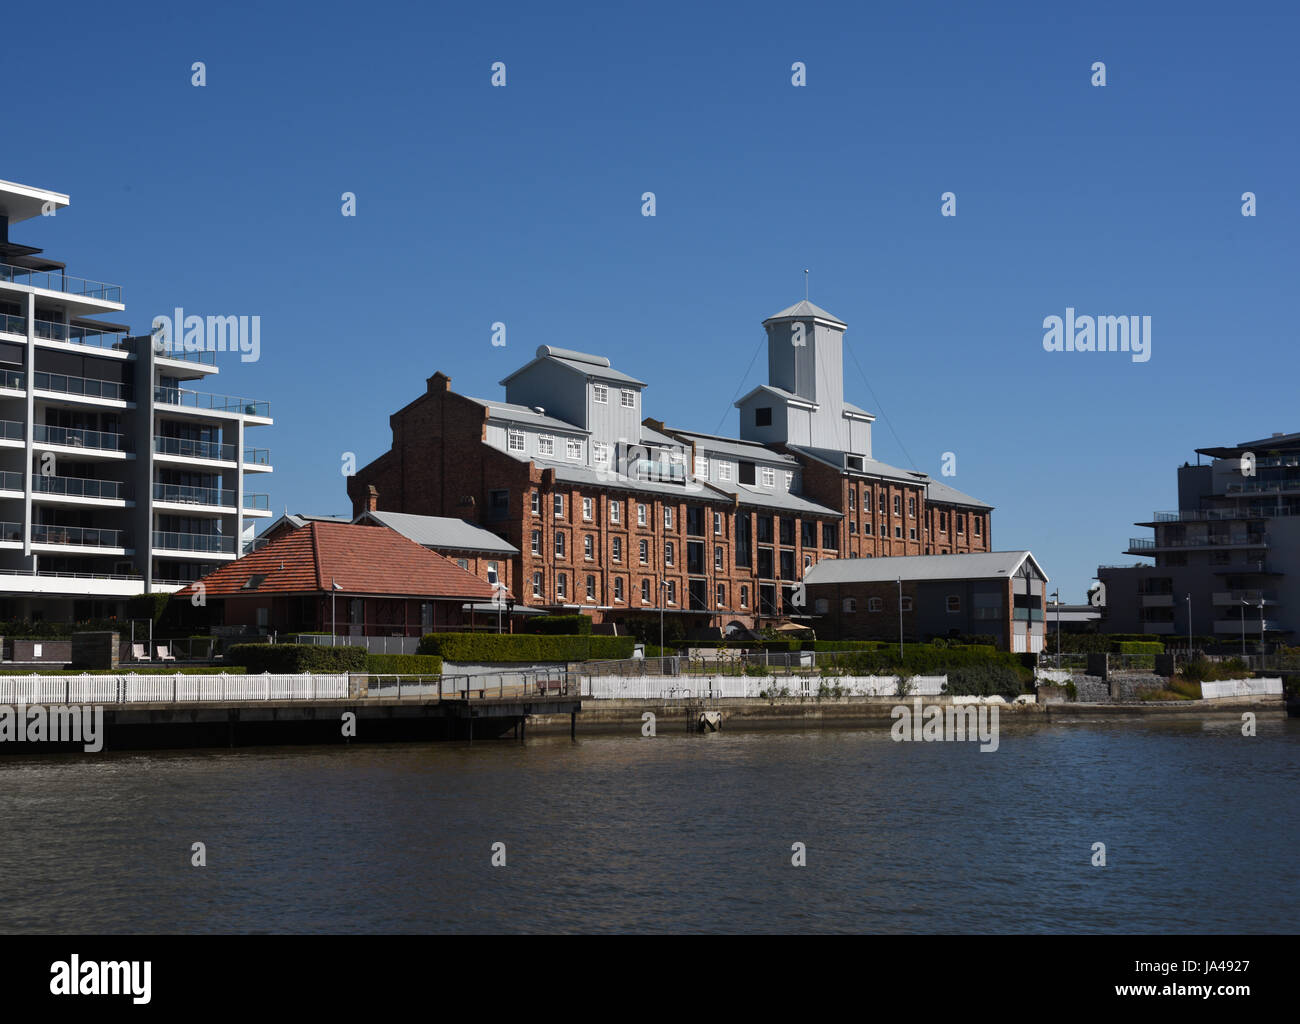 Brisbane, Australia: Former Colonial Sugar refinery at New Farm, converted to riverside apartments - Stock Image